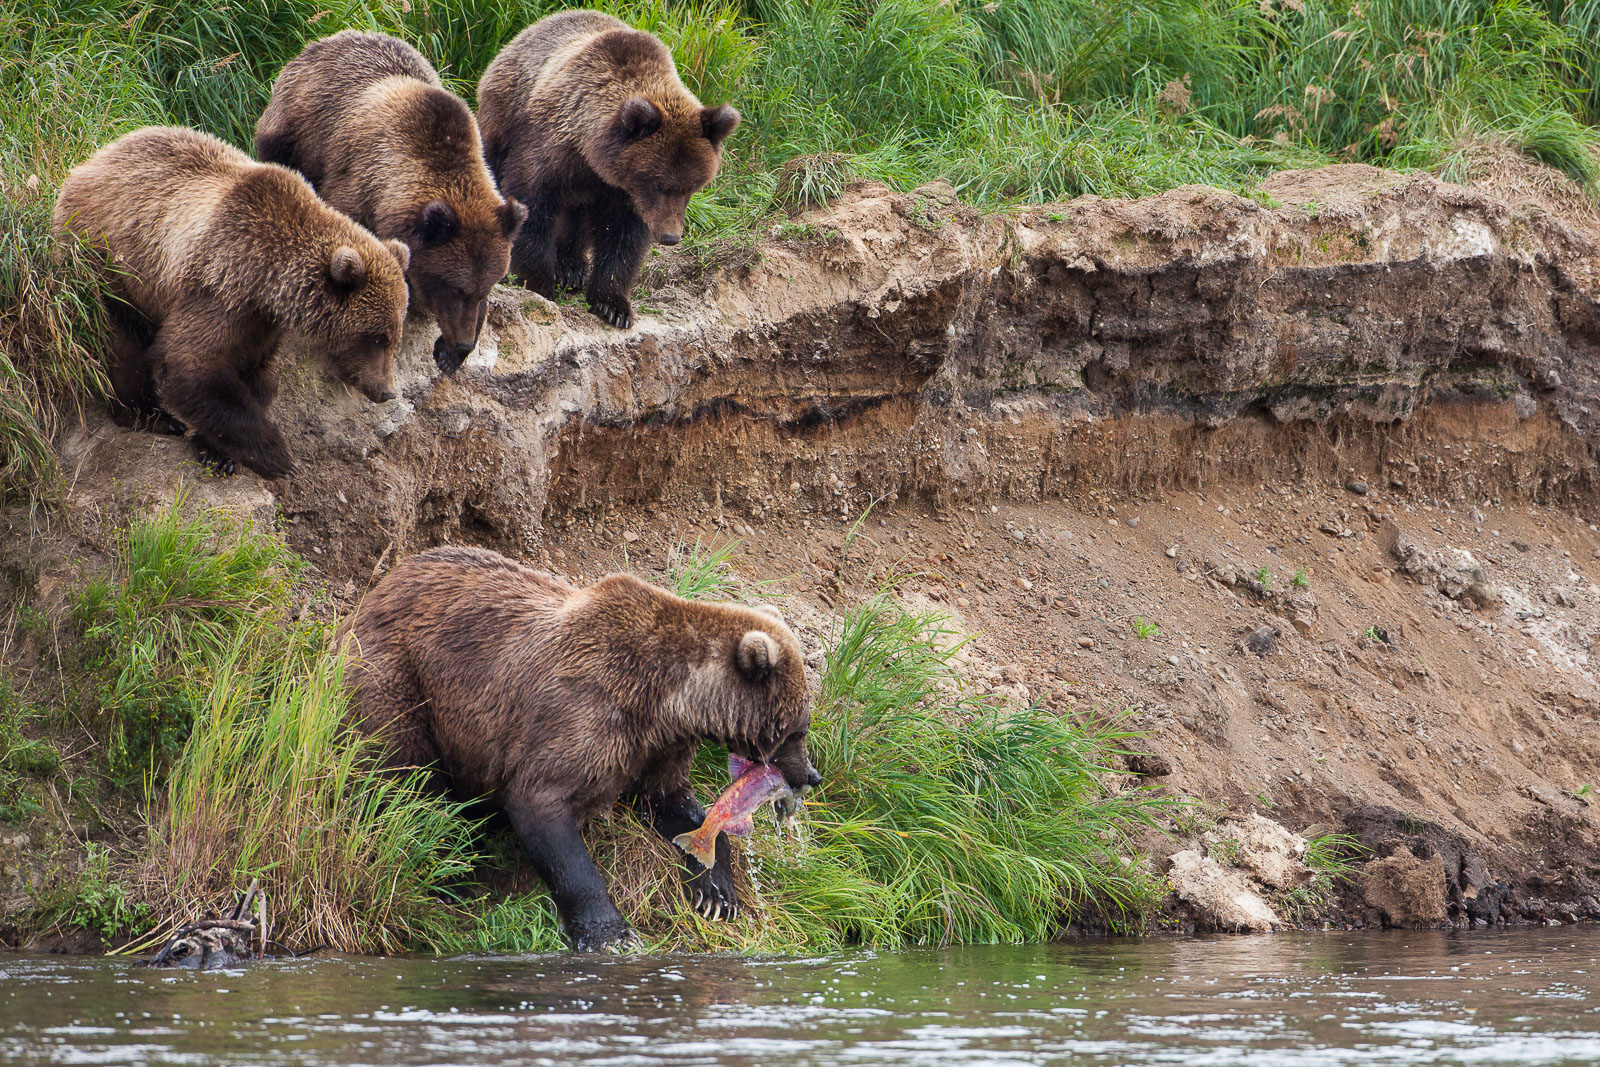 Riverside,Cub,Fall,Grizzly,Wildlife,river,water,katmai national park,trees,green,horizontal, bear, photo